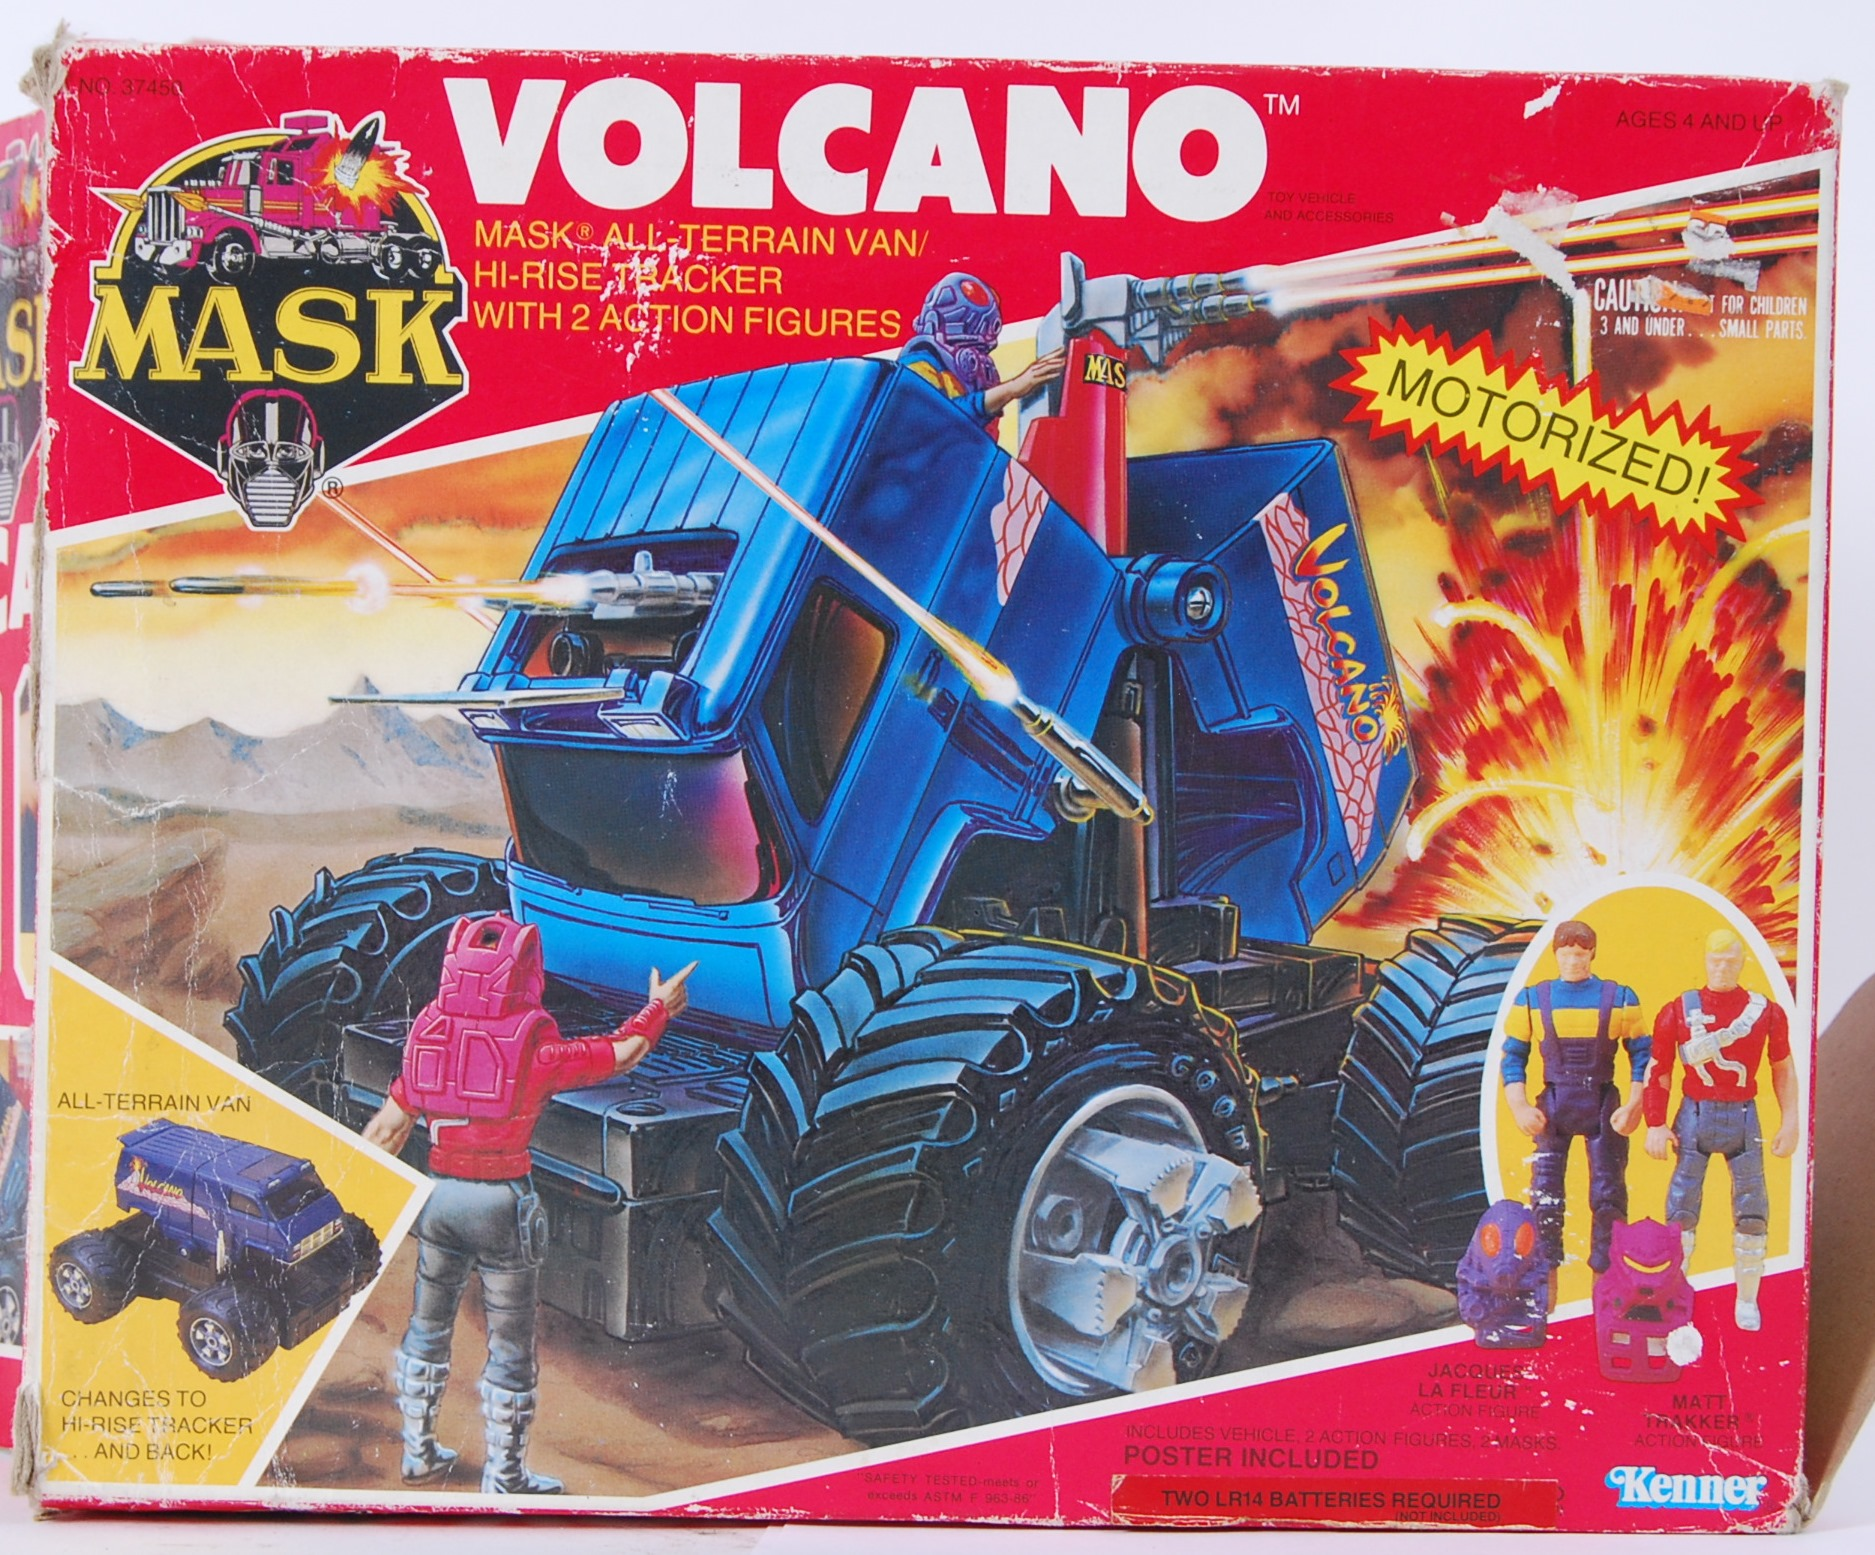 MASK A 1980 s Kenner made MASK Volcano vehicle Within the